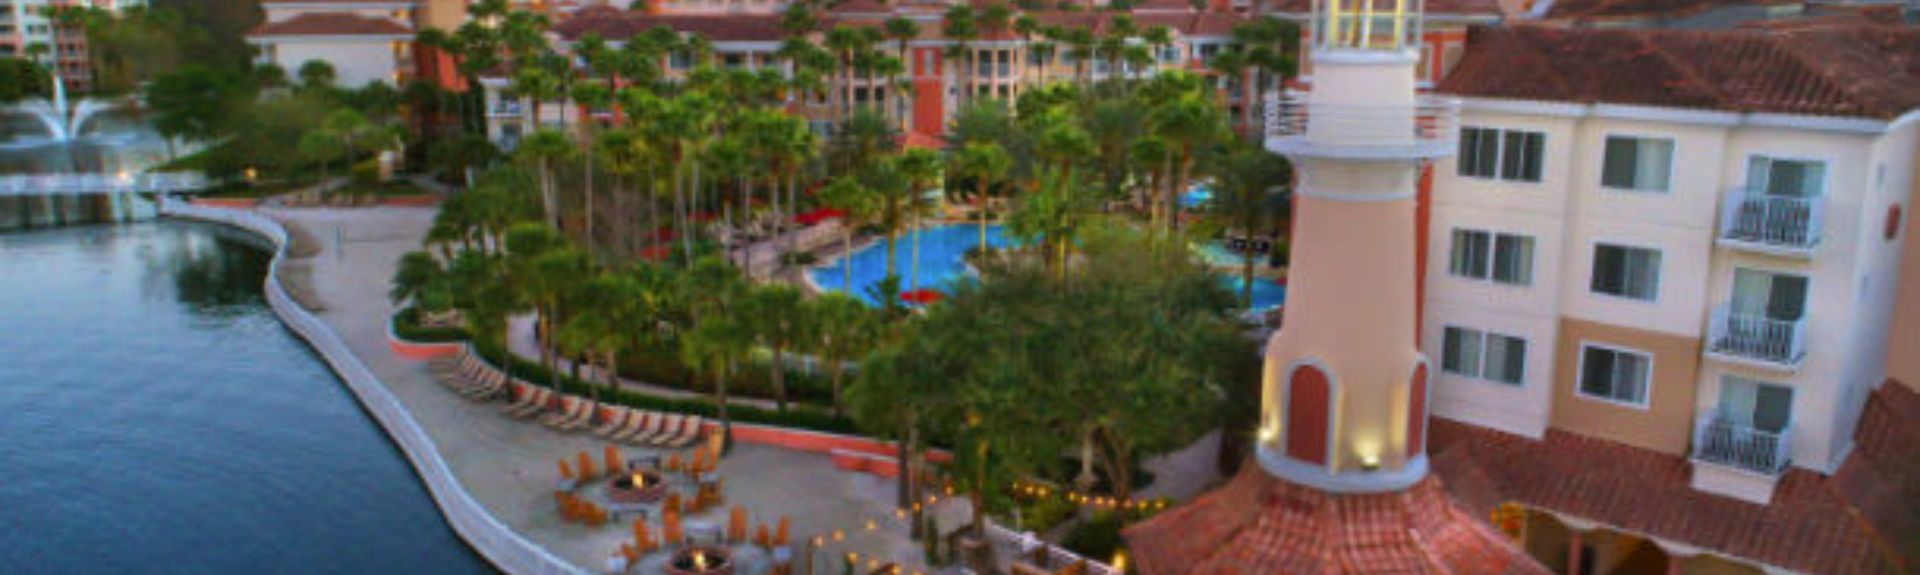 Marriotts Grande Vista (Williamsburg, Florida, United States)